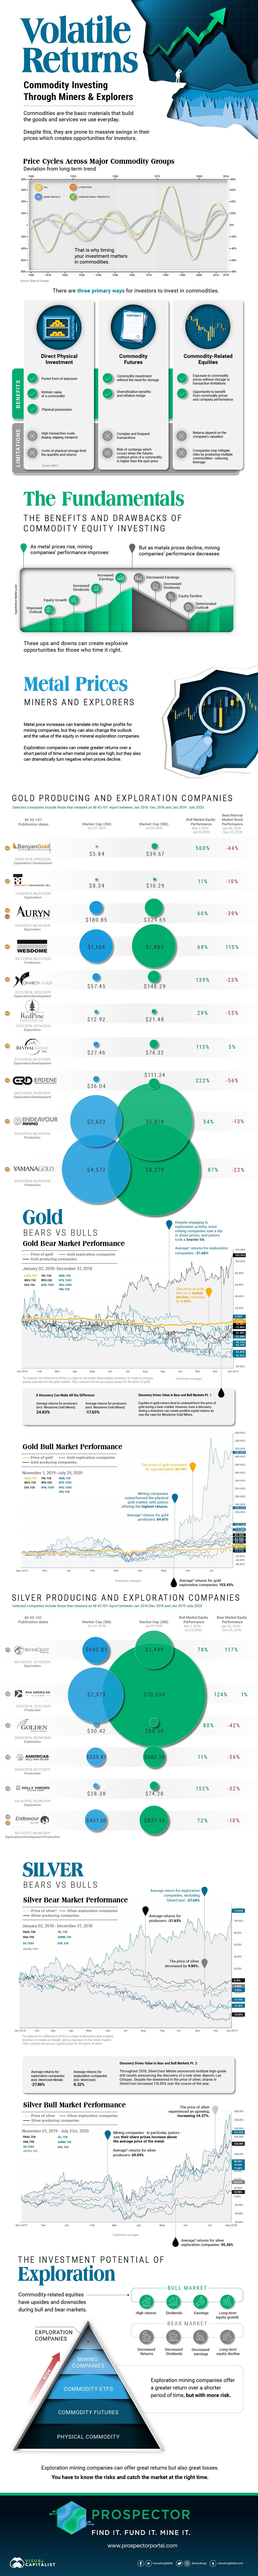 Volatile Returns: Commodity Investing Through Miners and Explorers #infographic